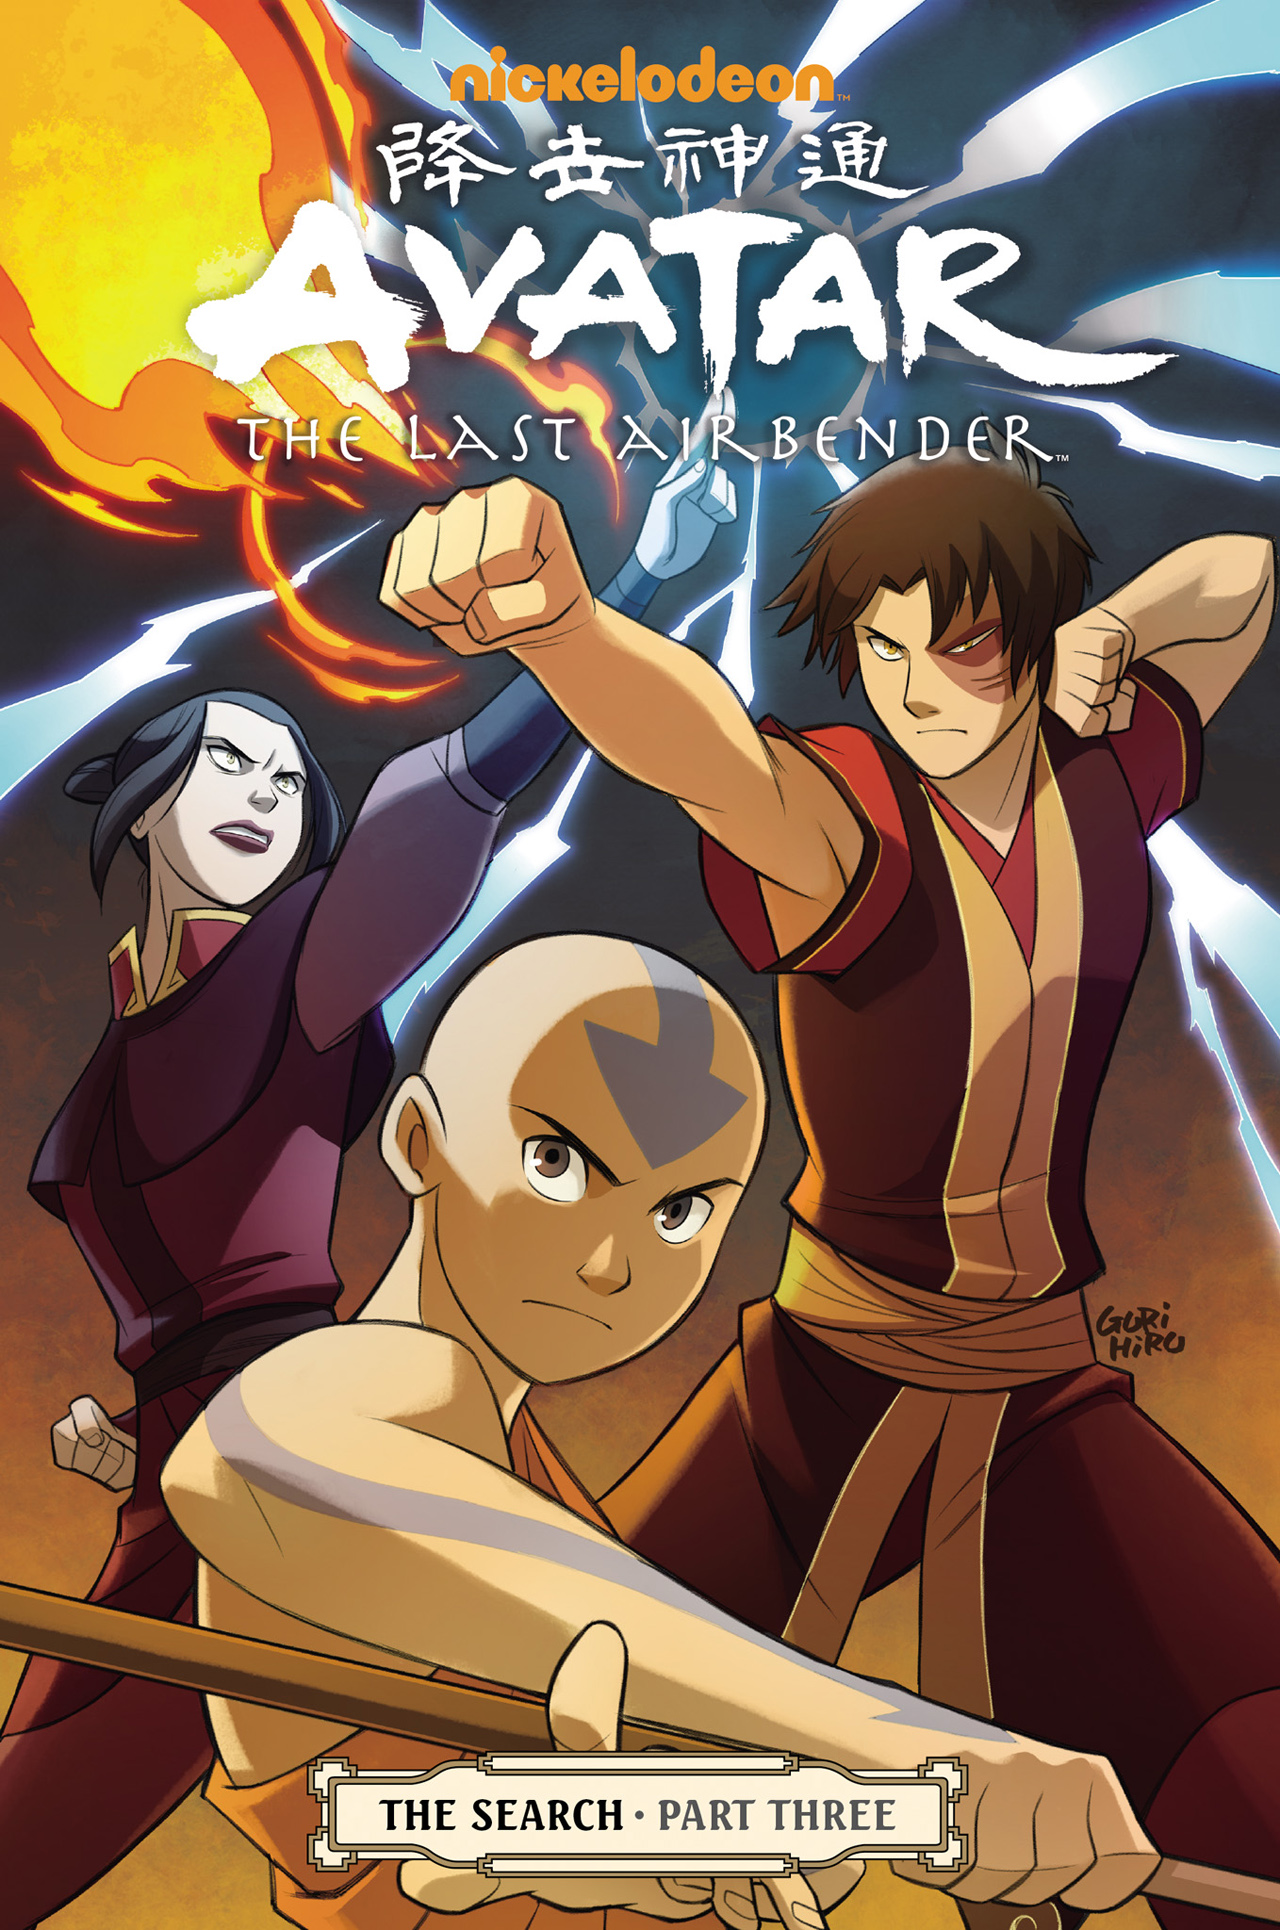 Read online Nickelodeon Avatar: The Last Airbender - The Search comic -  Issue # Part 3 - 1